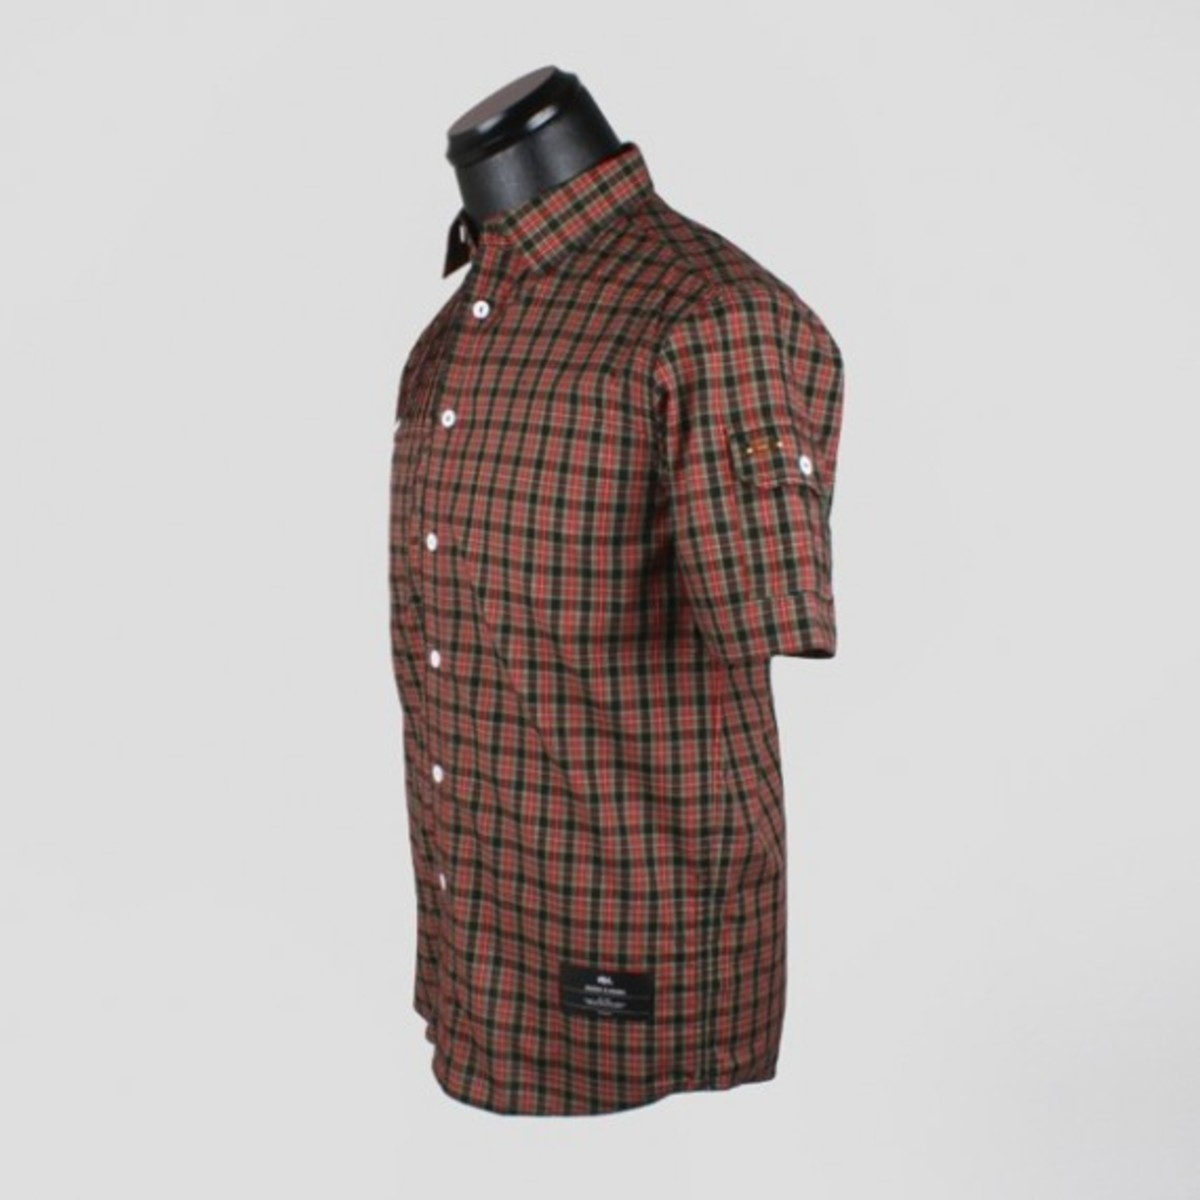 STPL-West-Short-Sleeve-Button-Shirt-SP11_2b